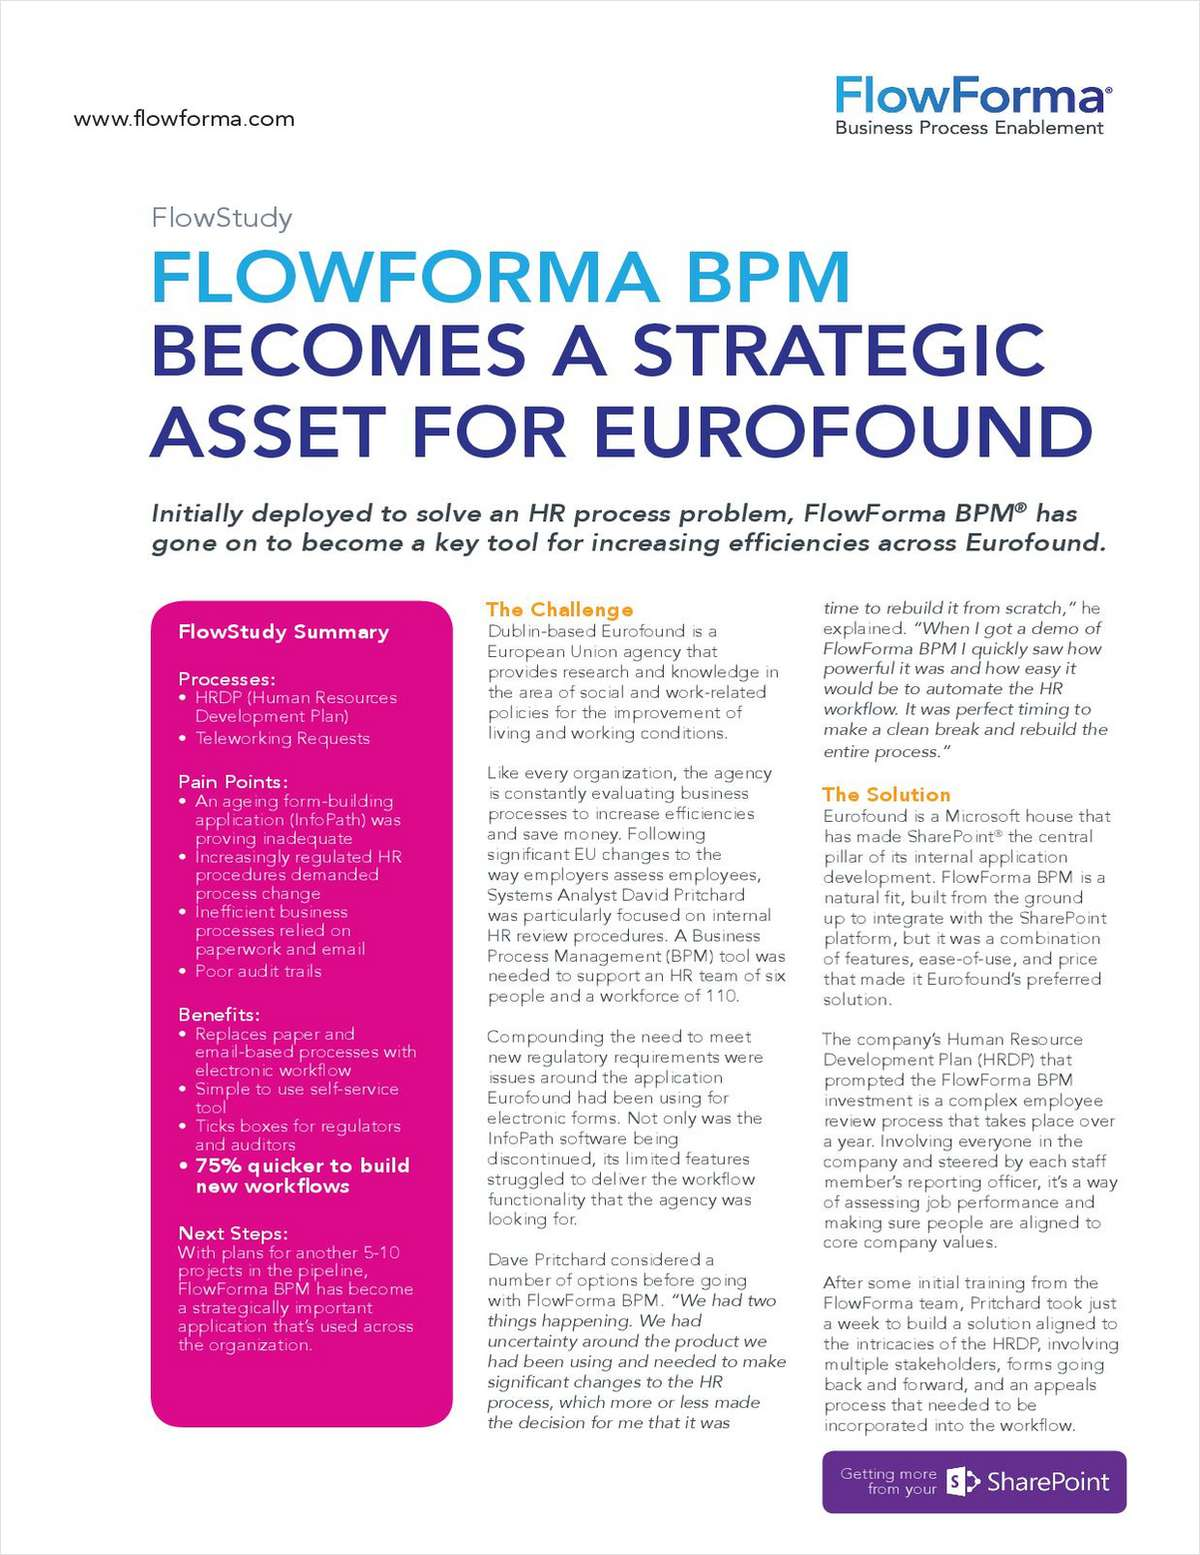 Eurofound Adopts FlowForma BPM To Drive 75% Efficiency Improvement